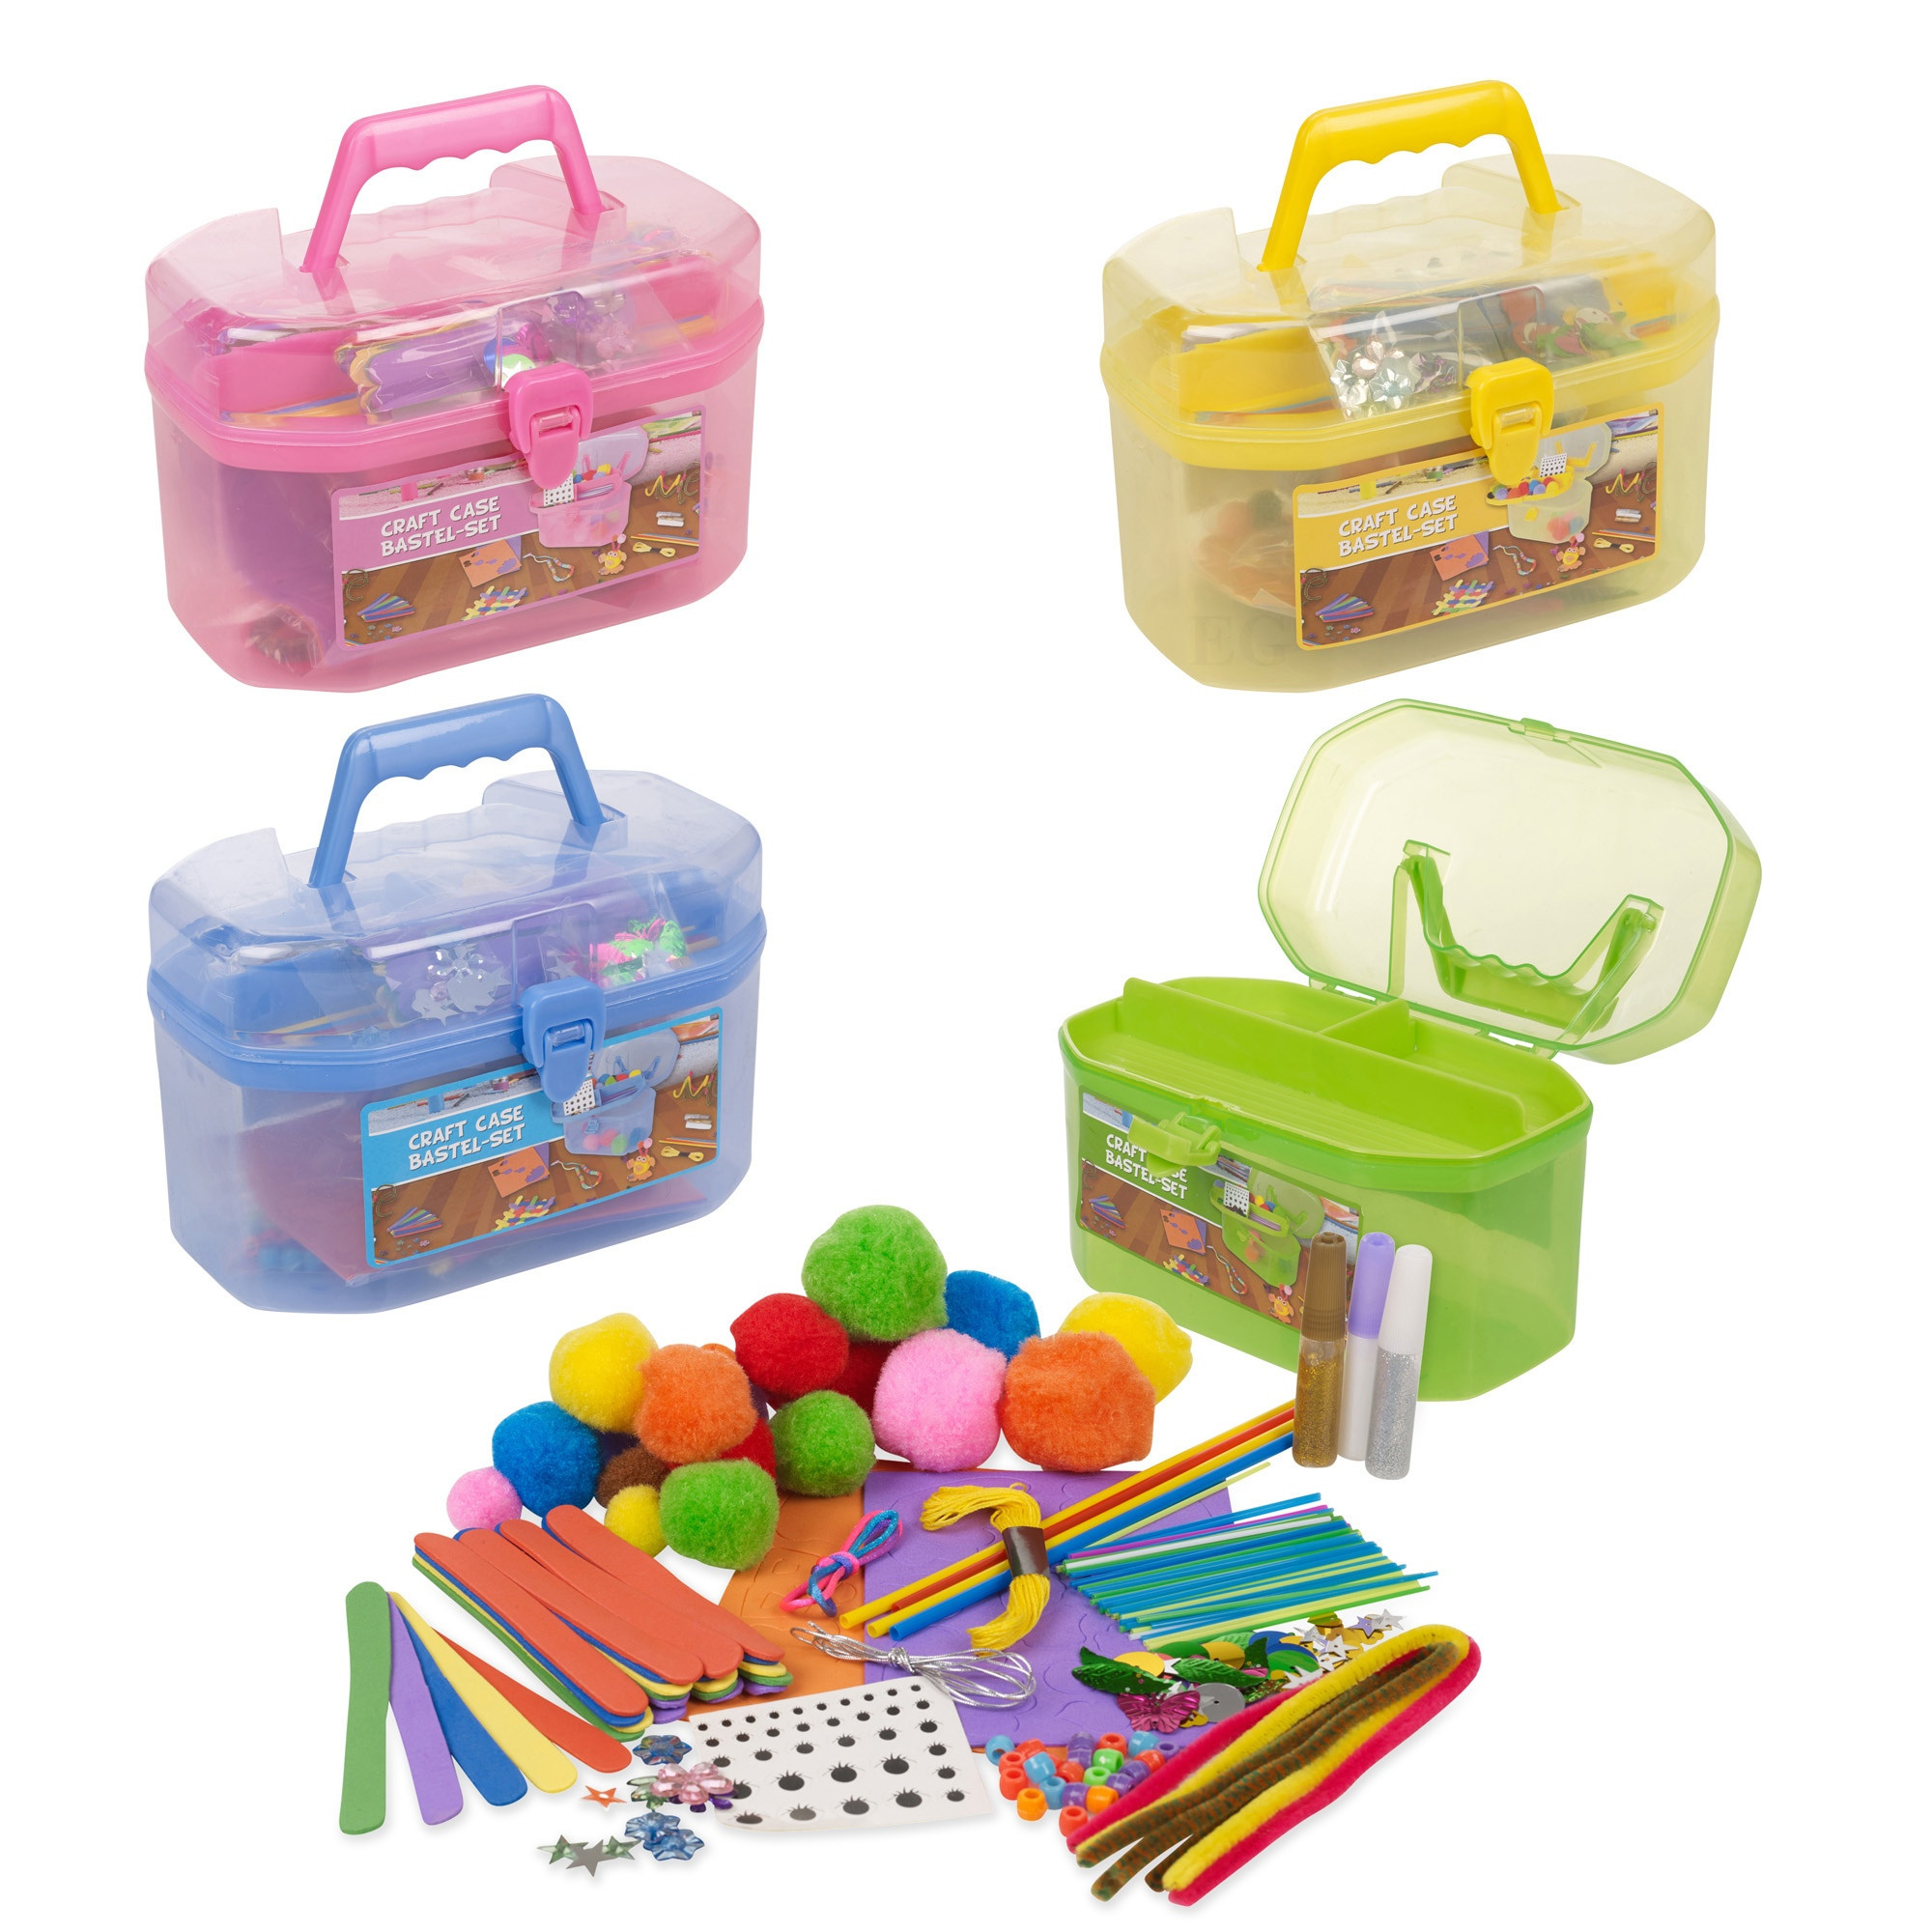 Arts And Crafts Sets For Kids  127 Piece Children s Arts & Craft Set Case Carry Handle